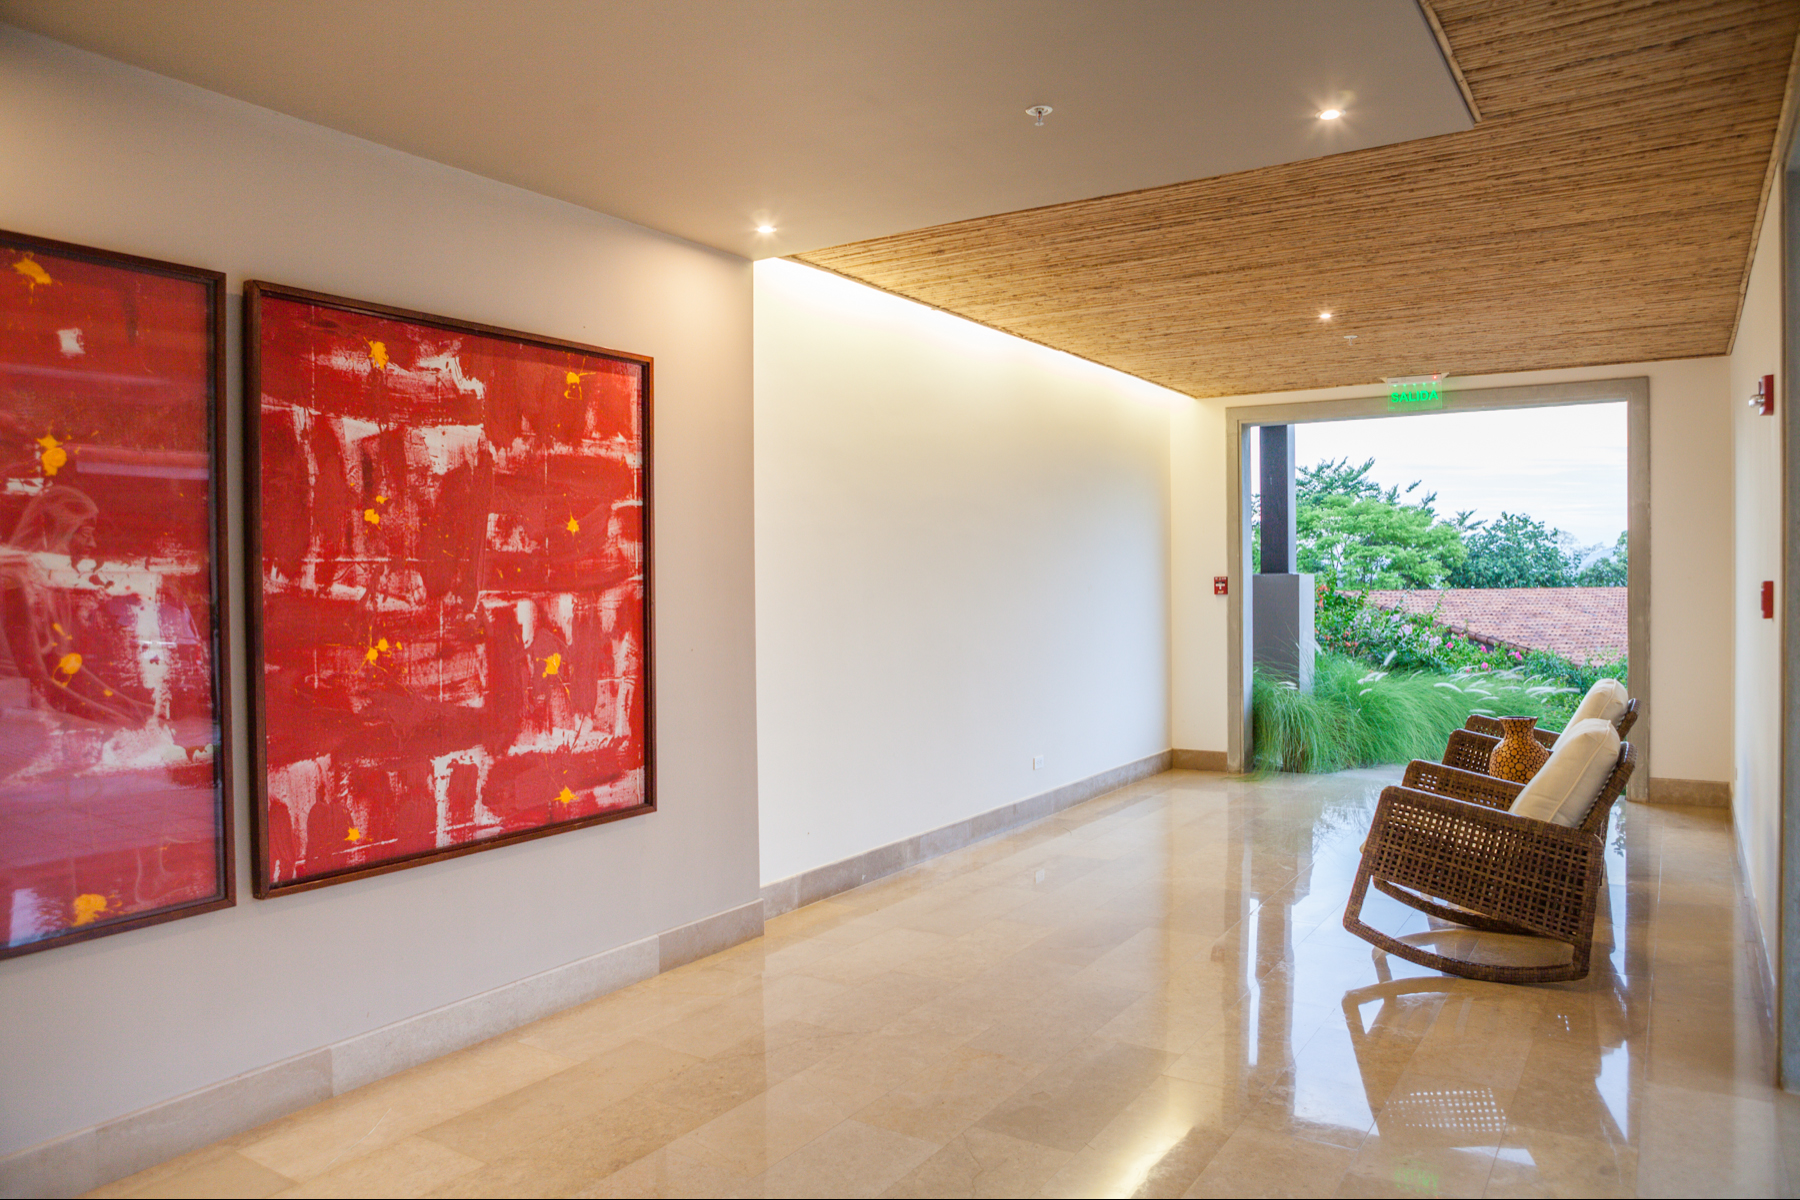 Additional photo for property listing at Roble Sabana 105 Reserva Conchal, Guanacaste Costa Rica